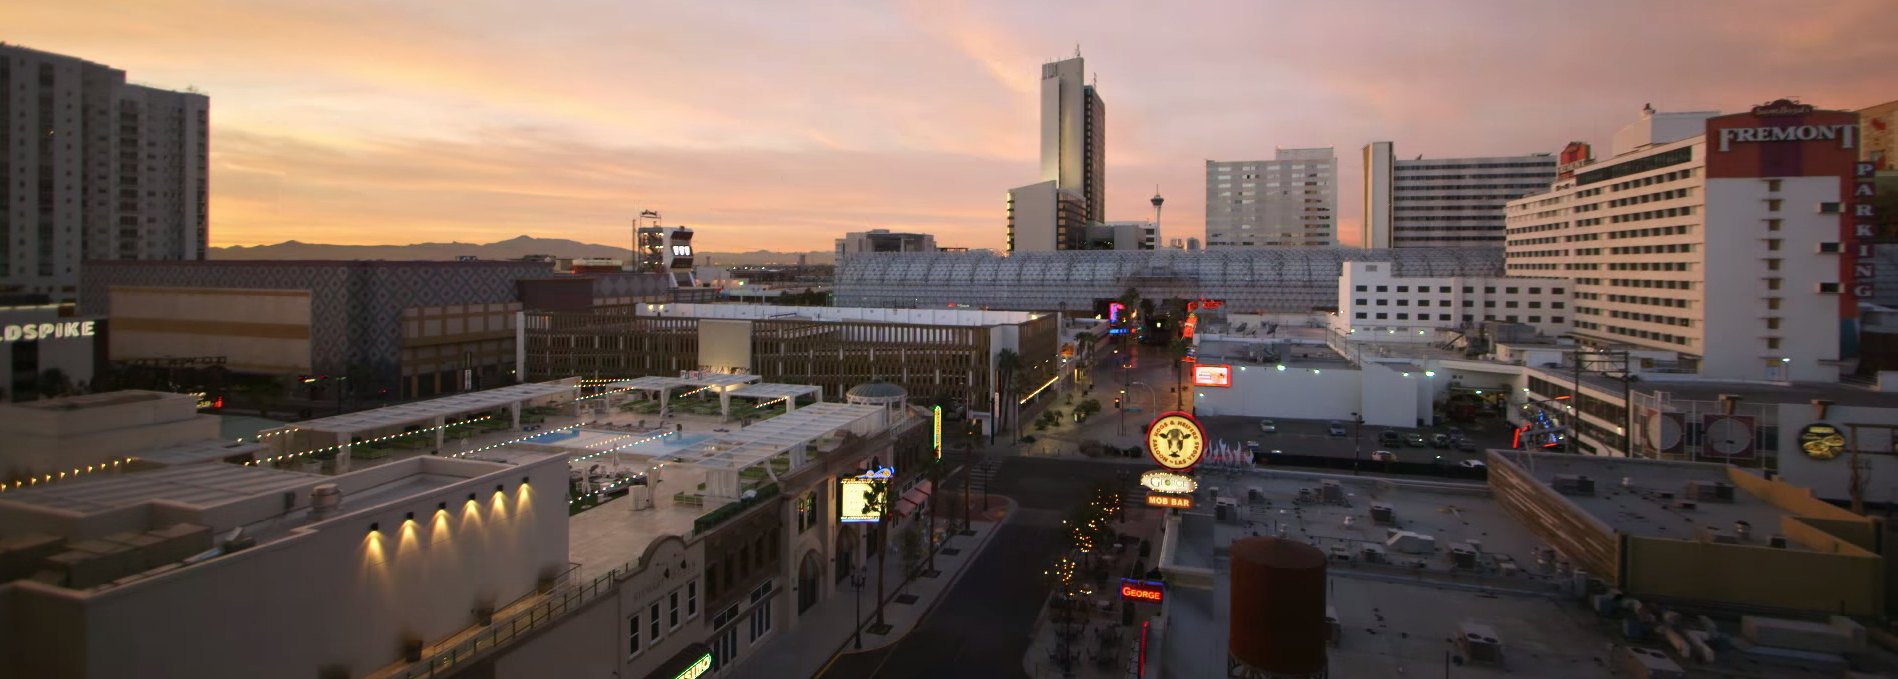 The Downtown Project. Image by: Morgan Spurlock / Tribeca / YouTube